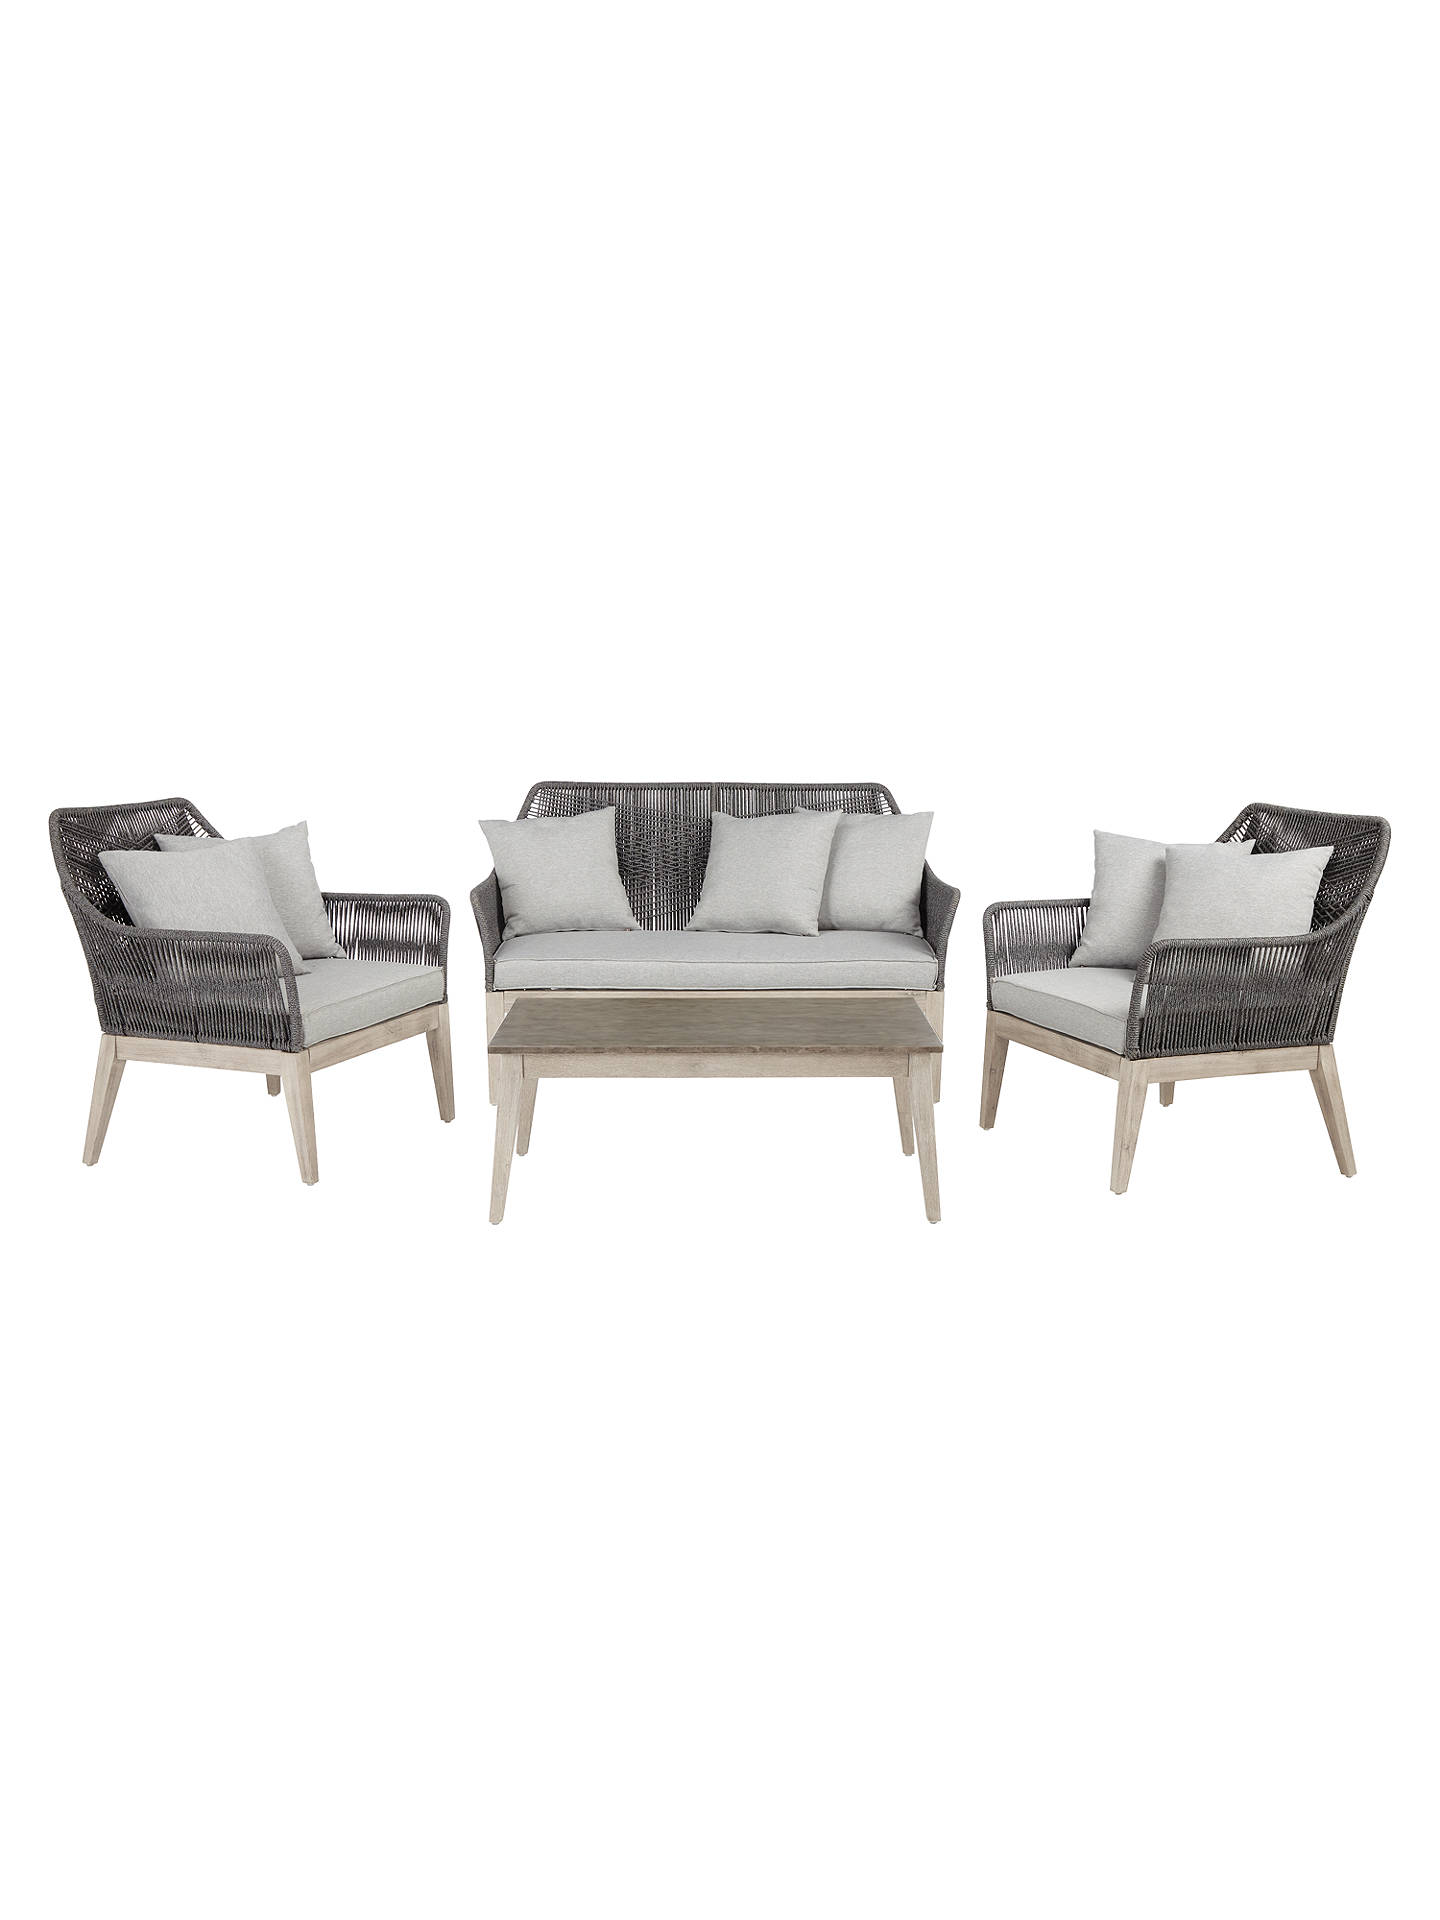 John Lewis Leia 2 Seater Garden Sofa Coffee Table And Lounging Armchair Pair